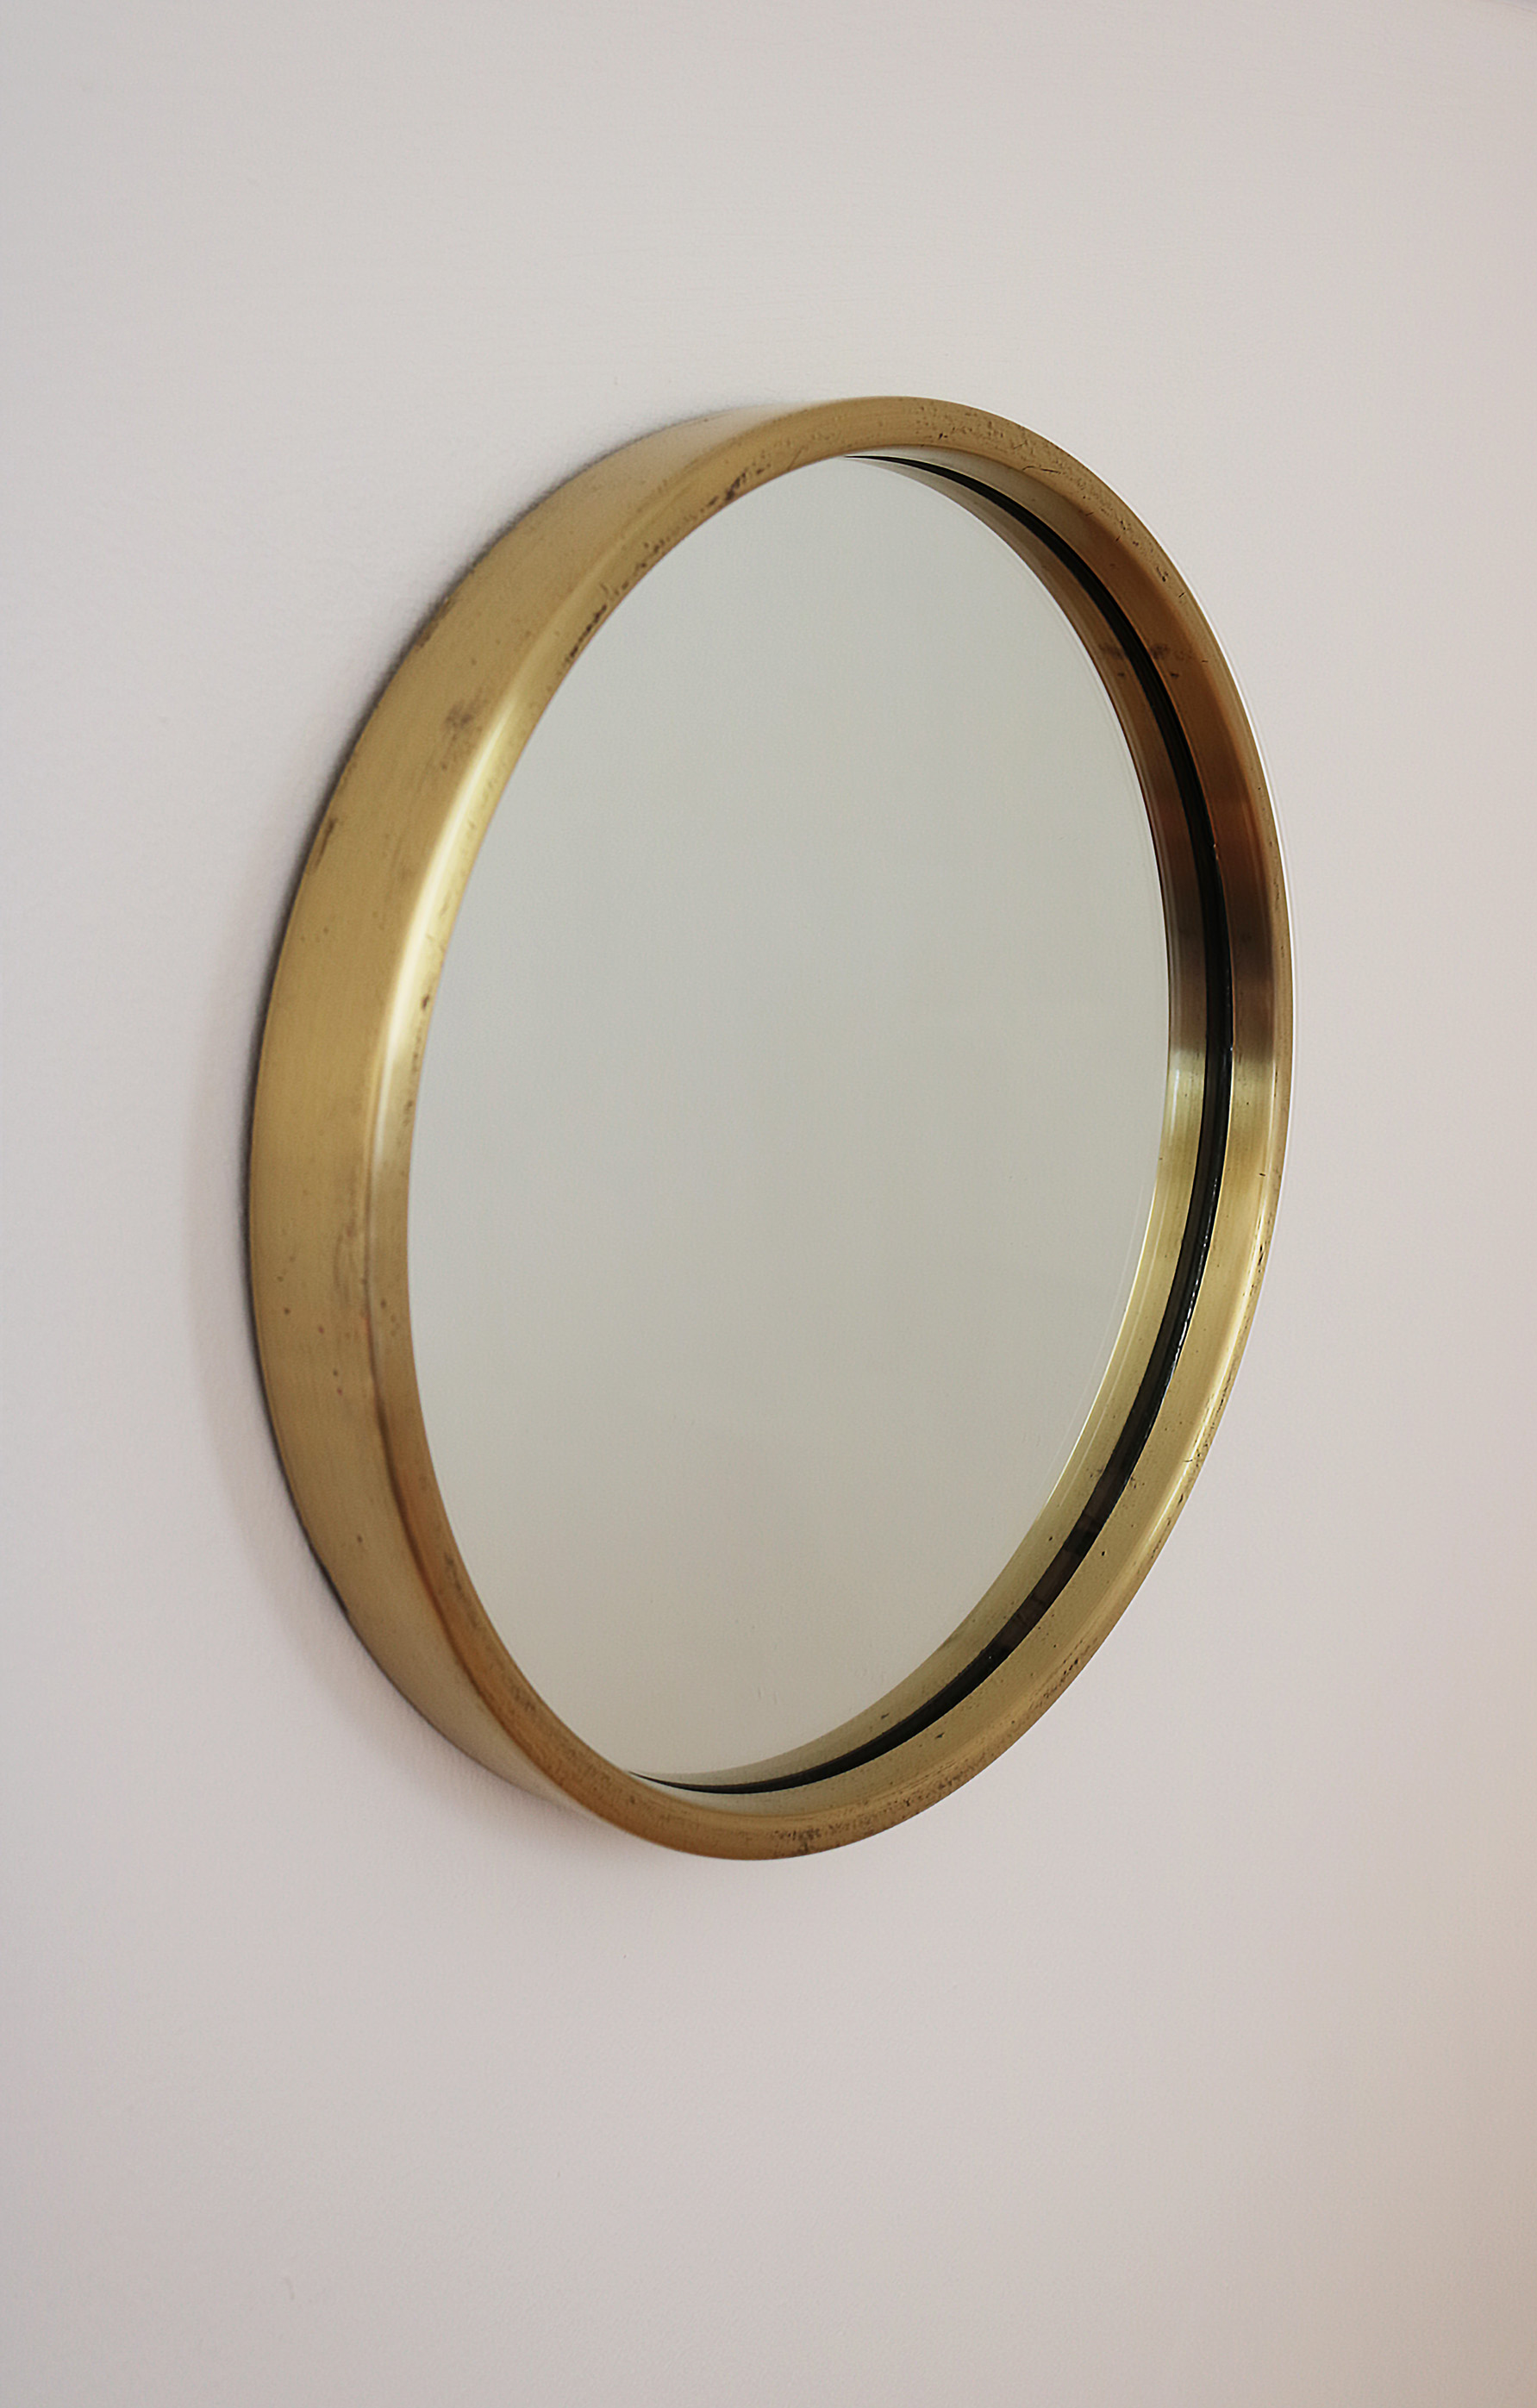 Scandinavian Design An Original 1960s Swedish Glasmäster Markaryd Round Brass Porthole Mirror